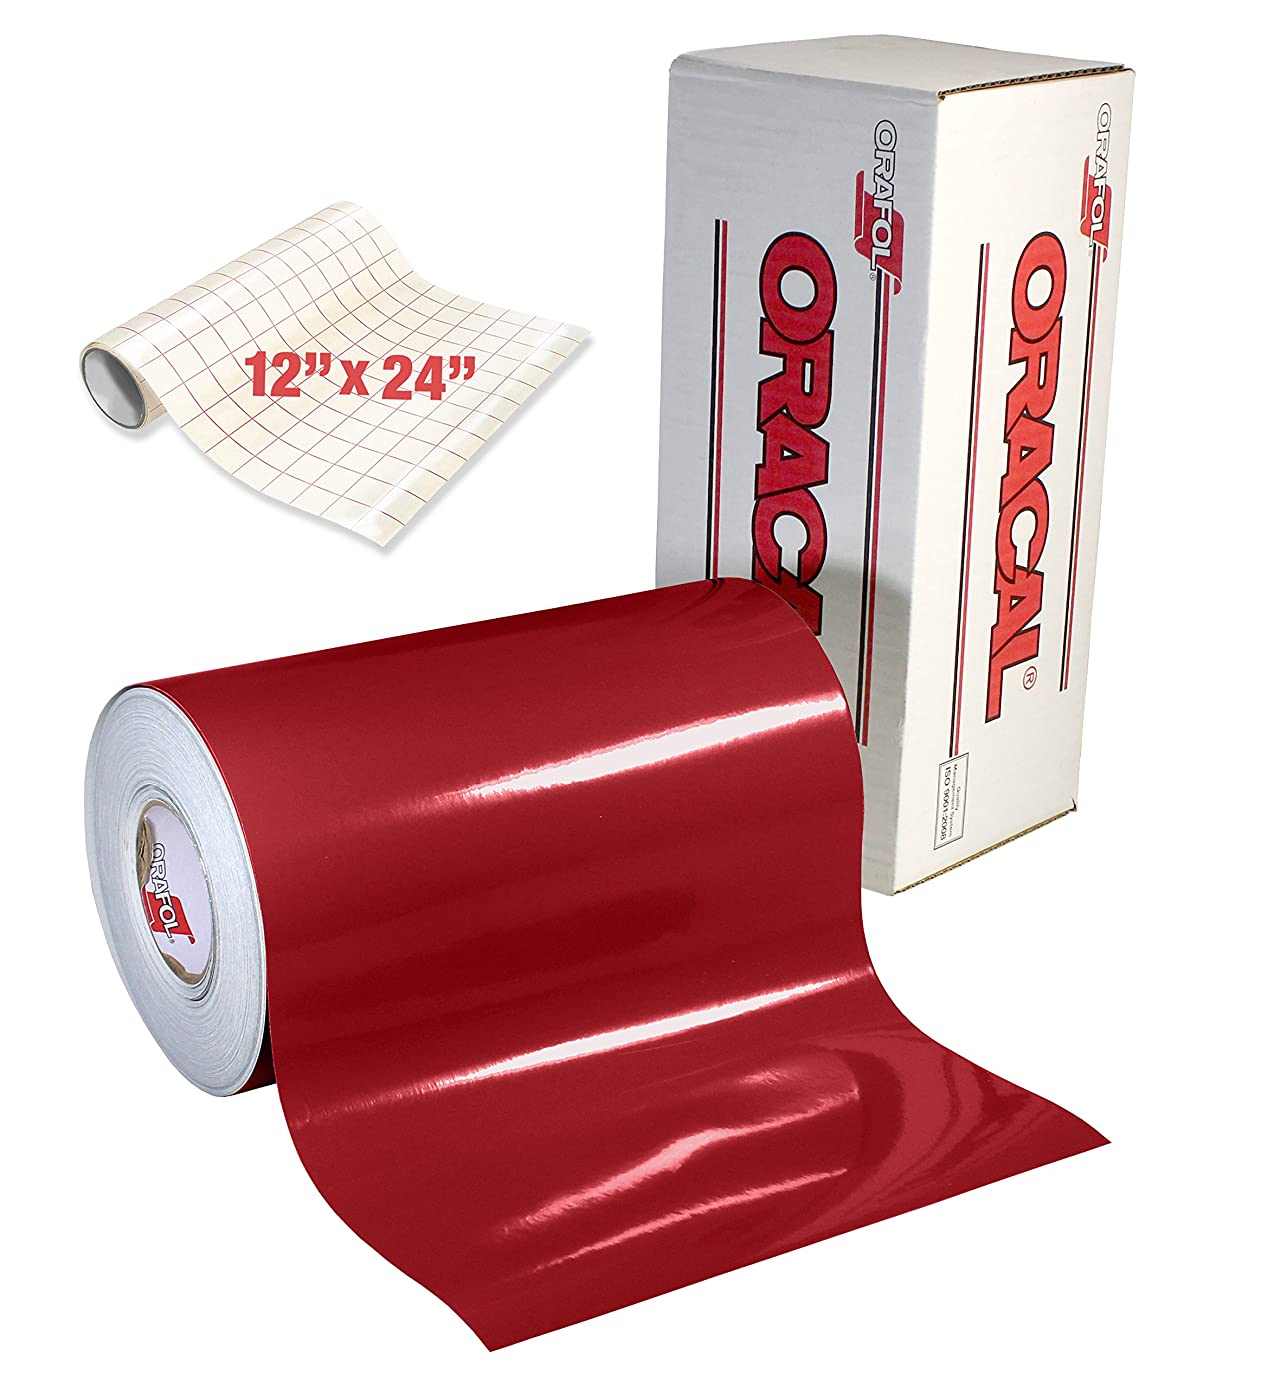 ORACAL 651 Gloss Dark Red Adhesive Craft Vinyl for Cameo, Cricut & Silhouette Including Free Roll of Clear Transfer Paper (6ft x 12